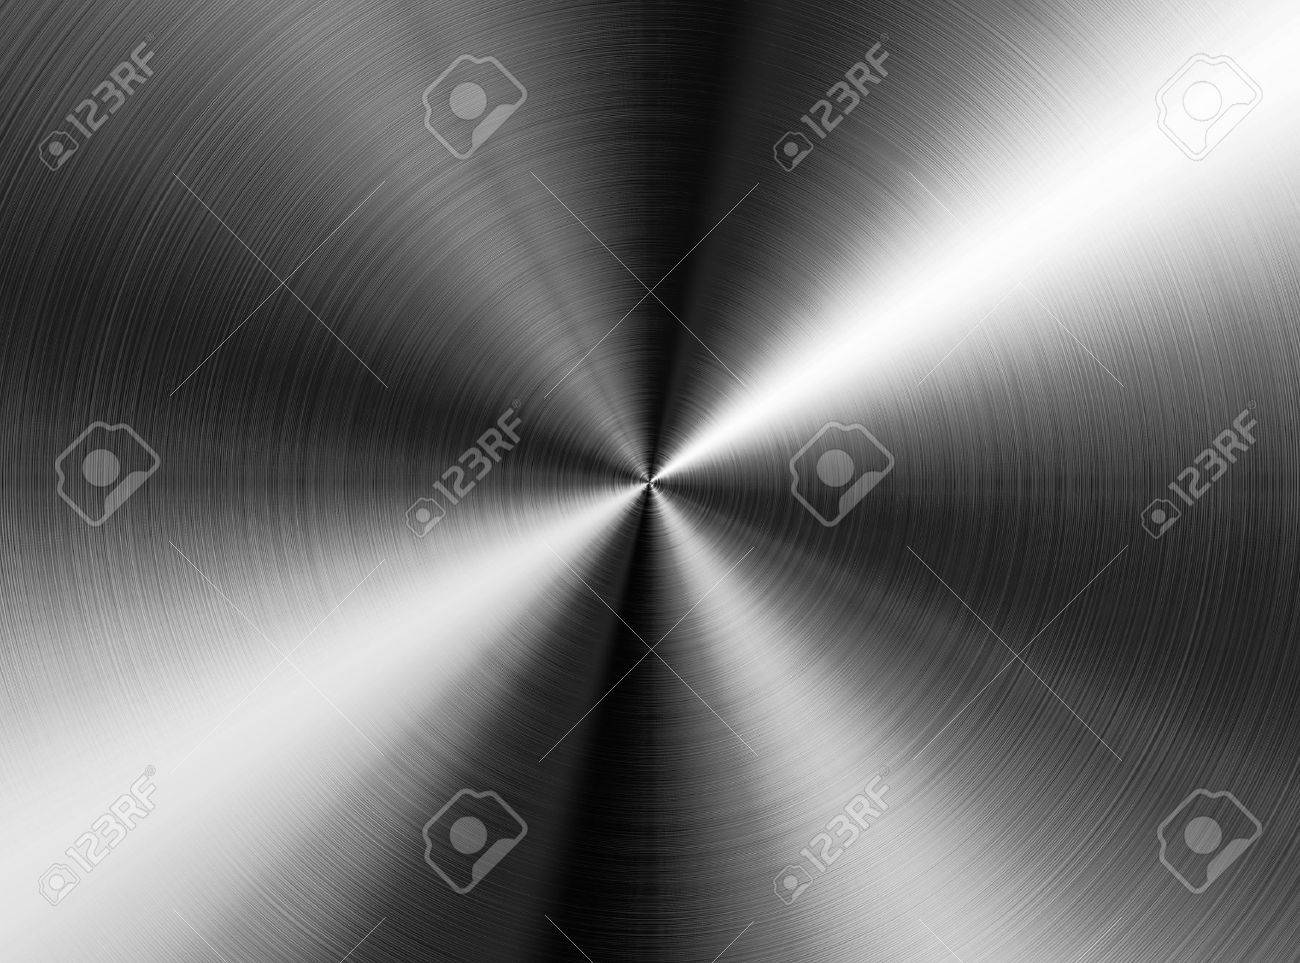 radial stainless steel background Stock Photo - 9140267